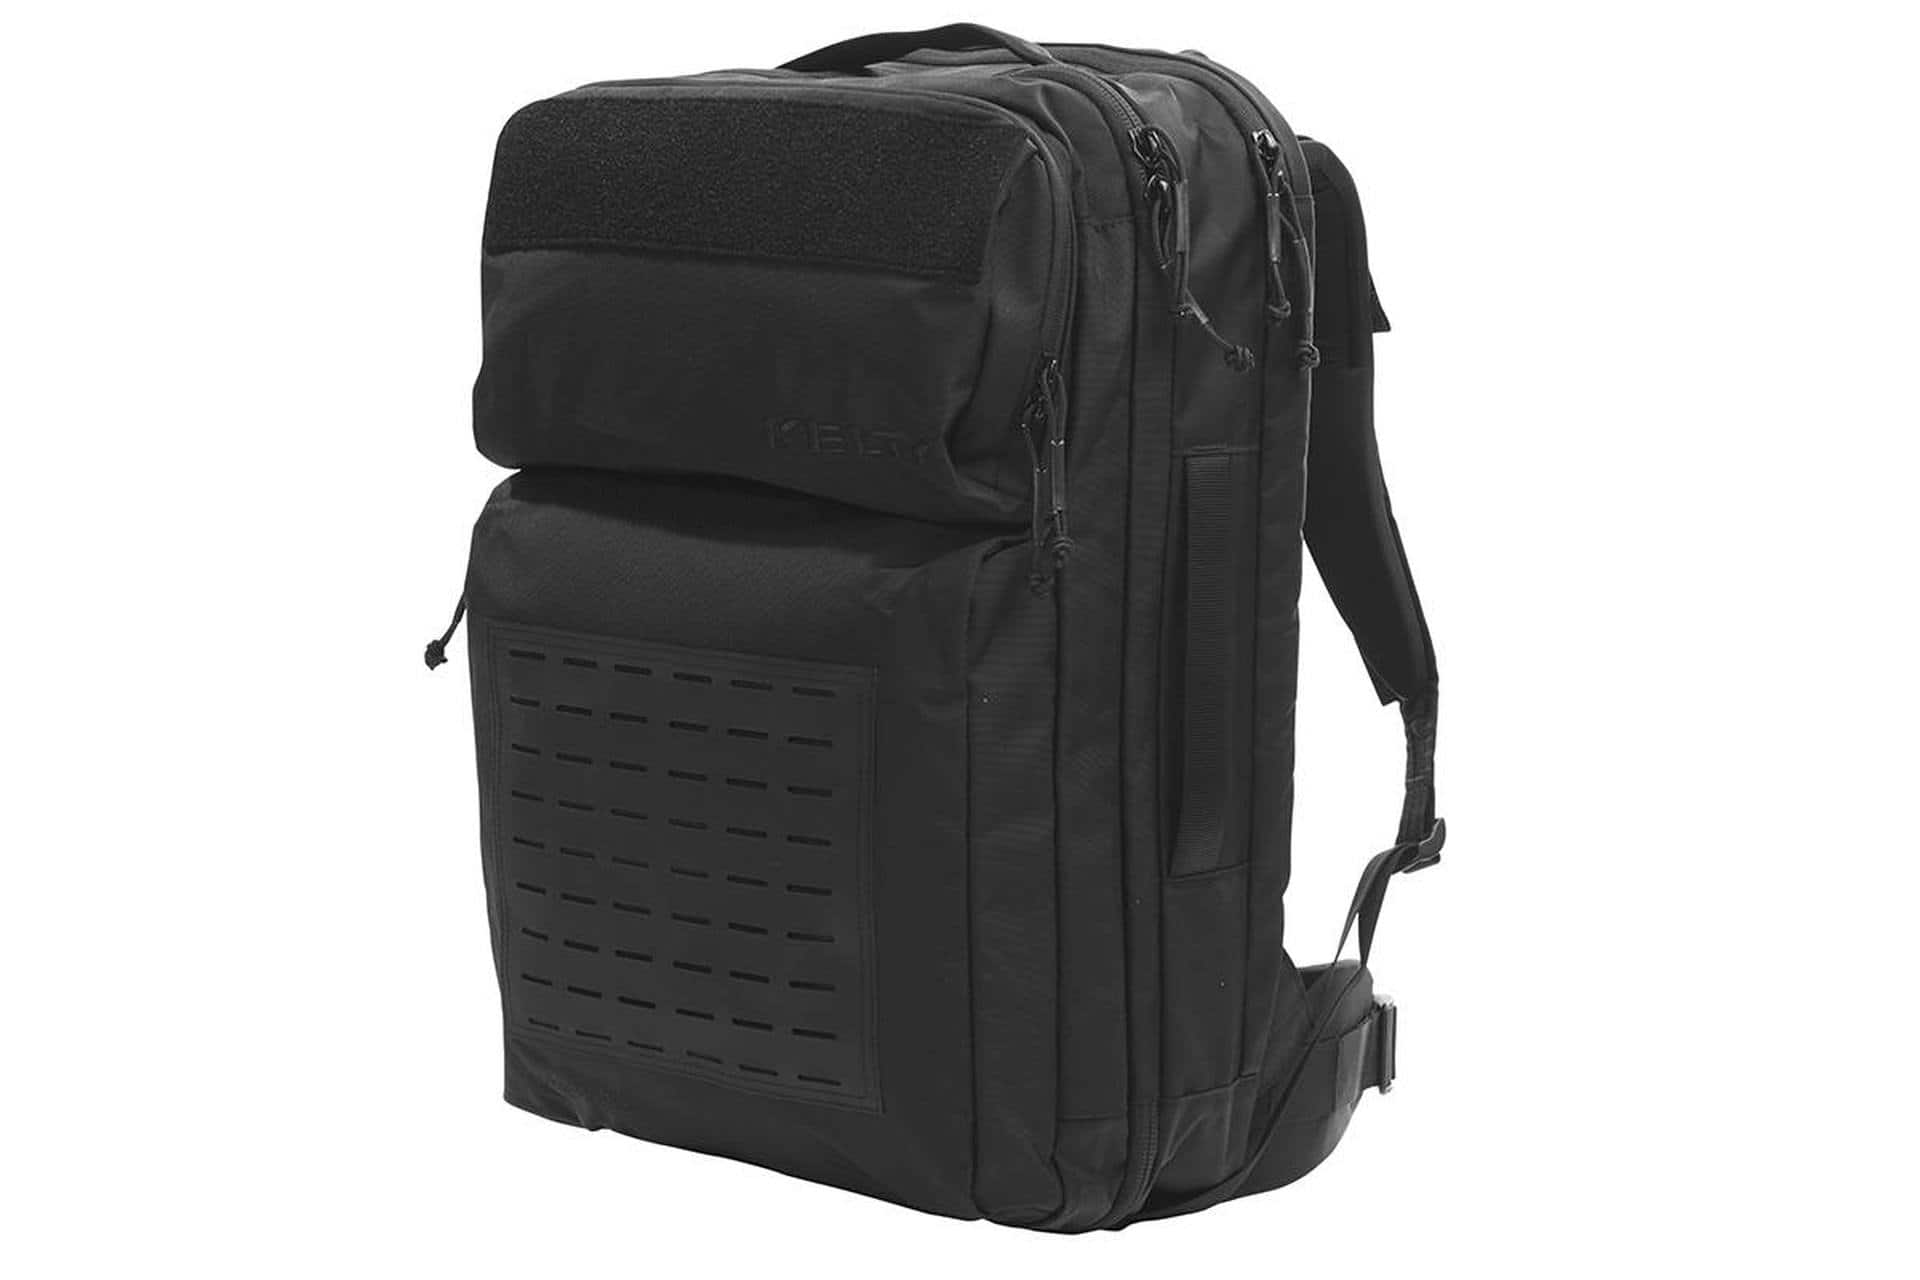 Kelty Nomad $65.40, MAP 3500 Backpack $53.40, Peregrine 1800 $37.20 Free Shipping